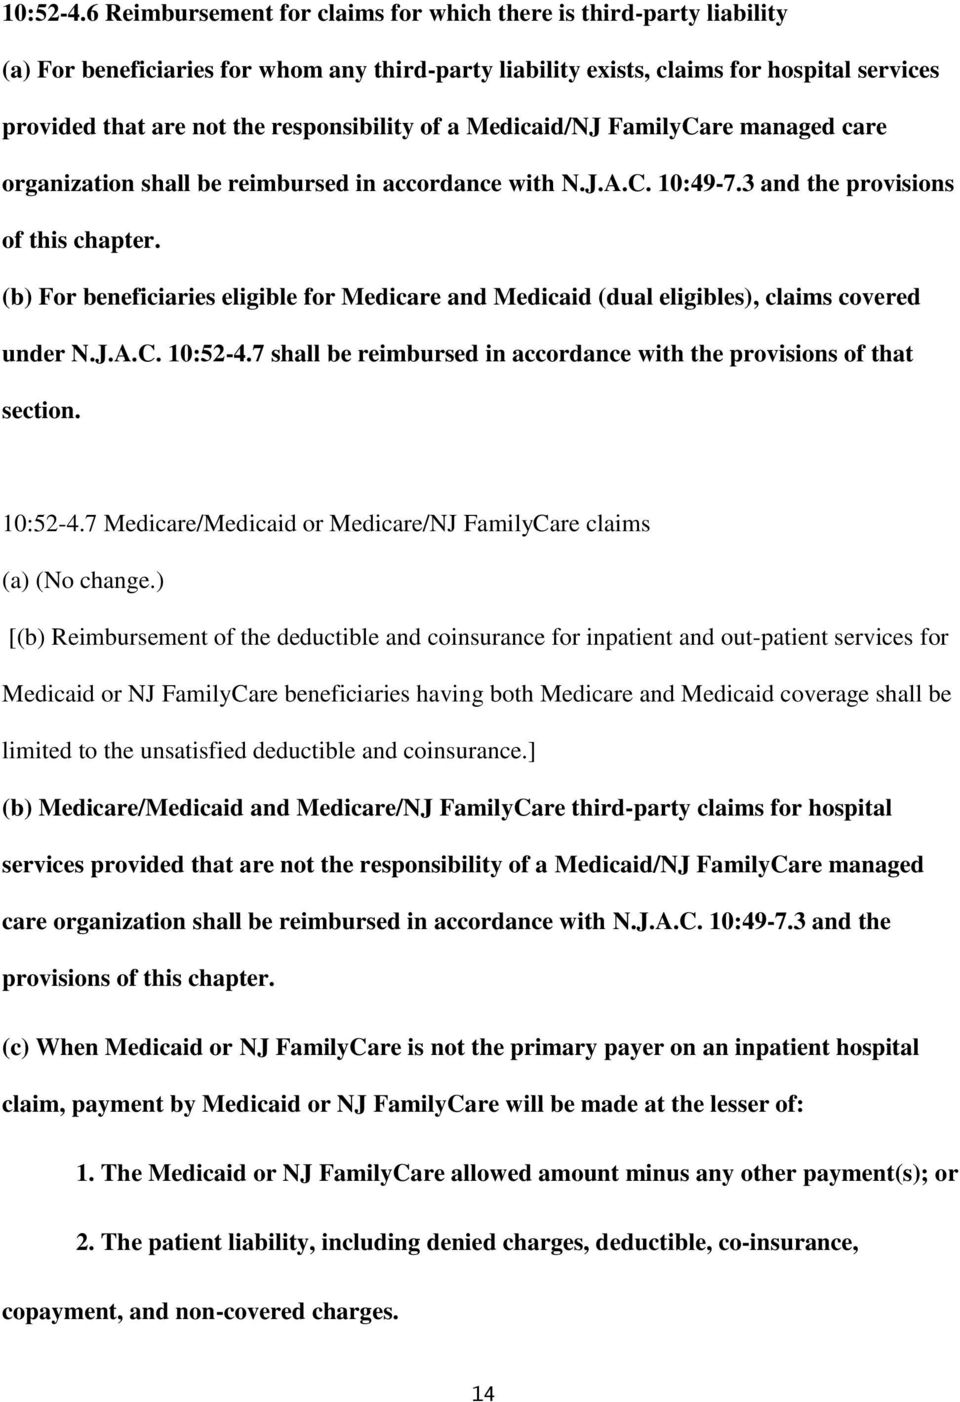 responsibility of a Medicaid/NJ FamilyCare managed care organization shall be reimbursed in accordance with N.J.A.C. 10:49-7.3 and the provisions of this chapter.